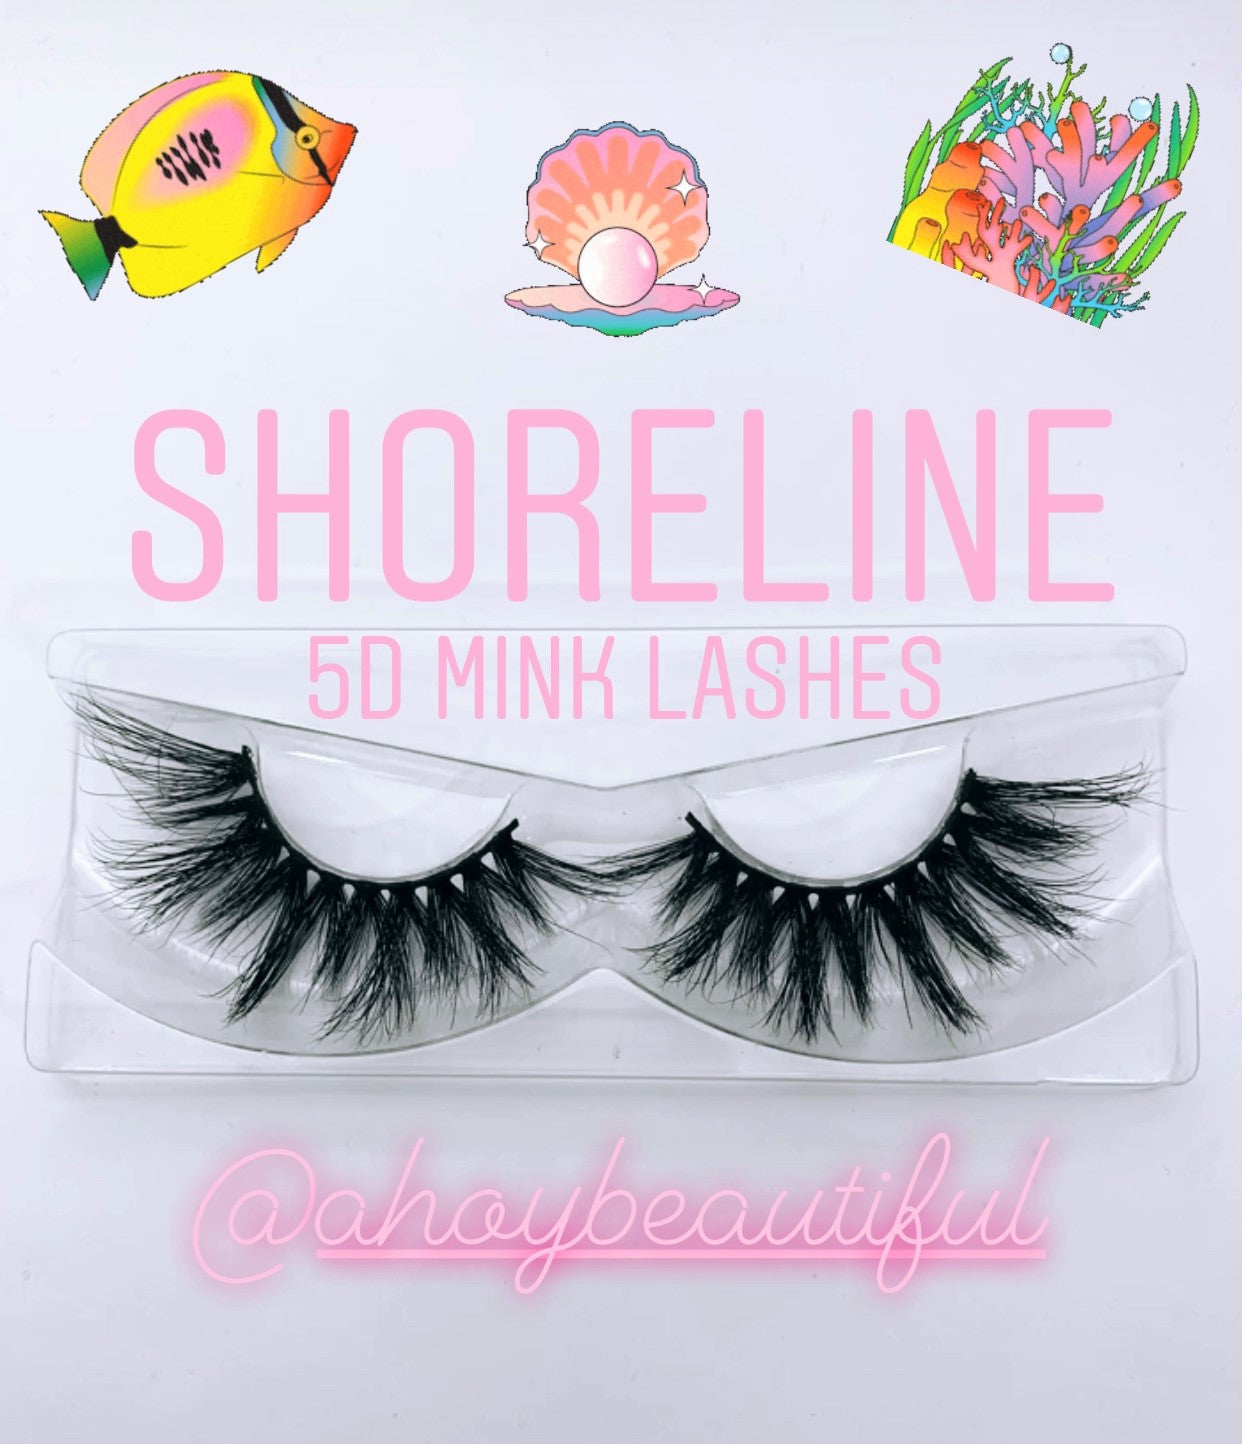 Shoreline Vacation Luxury Mink Lashes